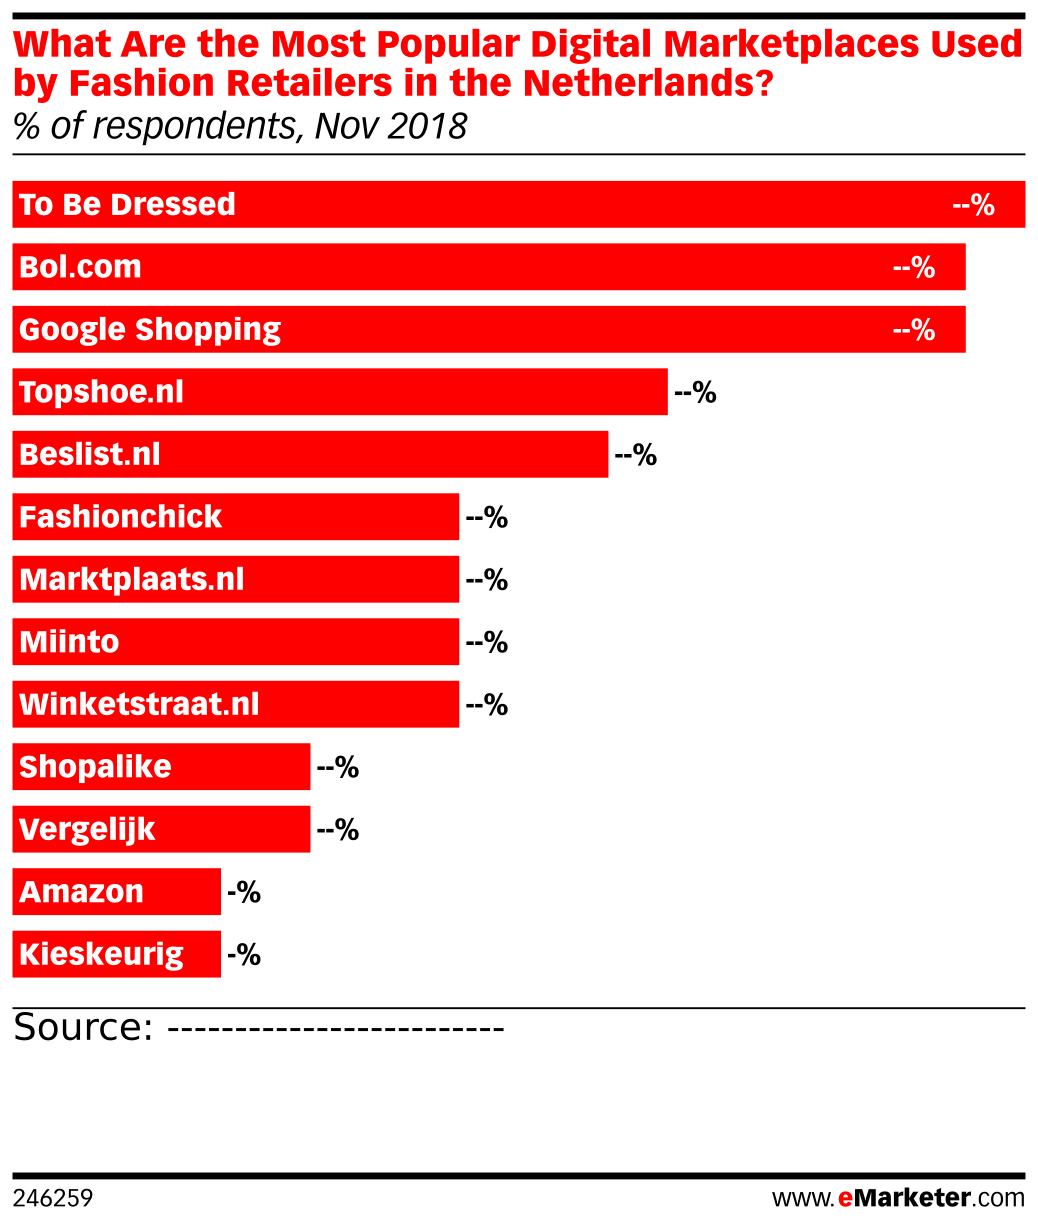 What Are the Most Popular Digital Marketplaces Used by Fashion Retailers in the Netherlands? (% of respondents, Nov 2018)